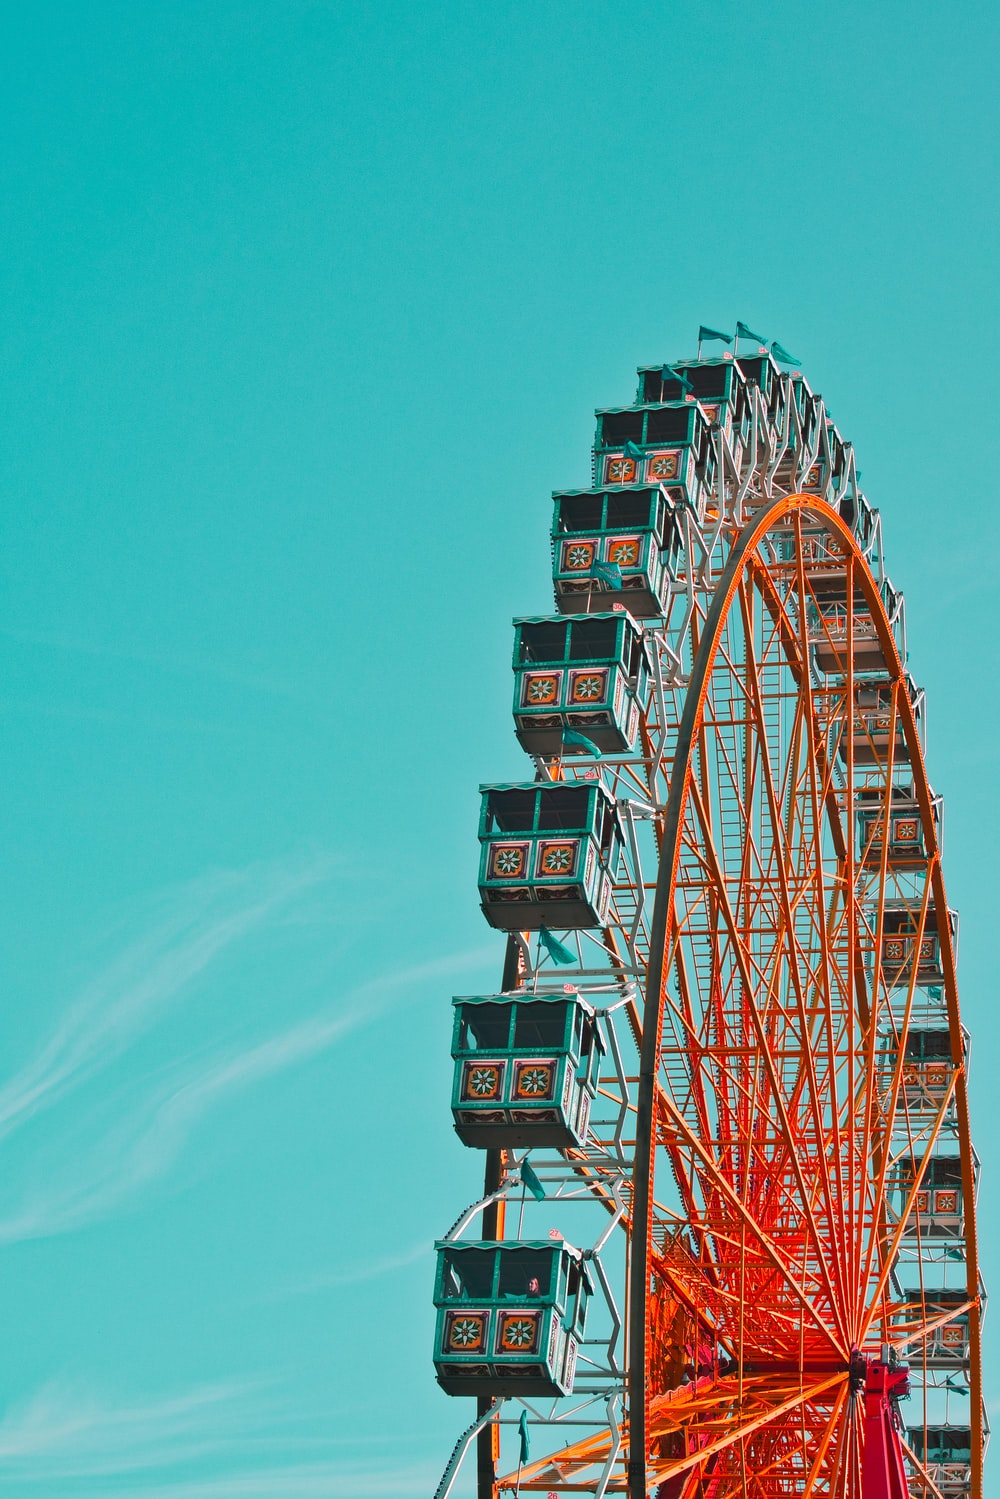 red and green ferris wheel under blue sky during daytime